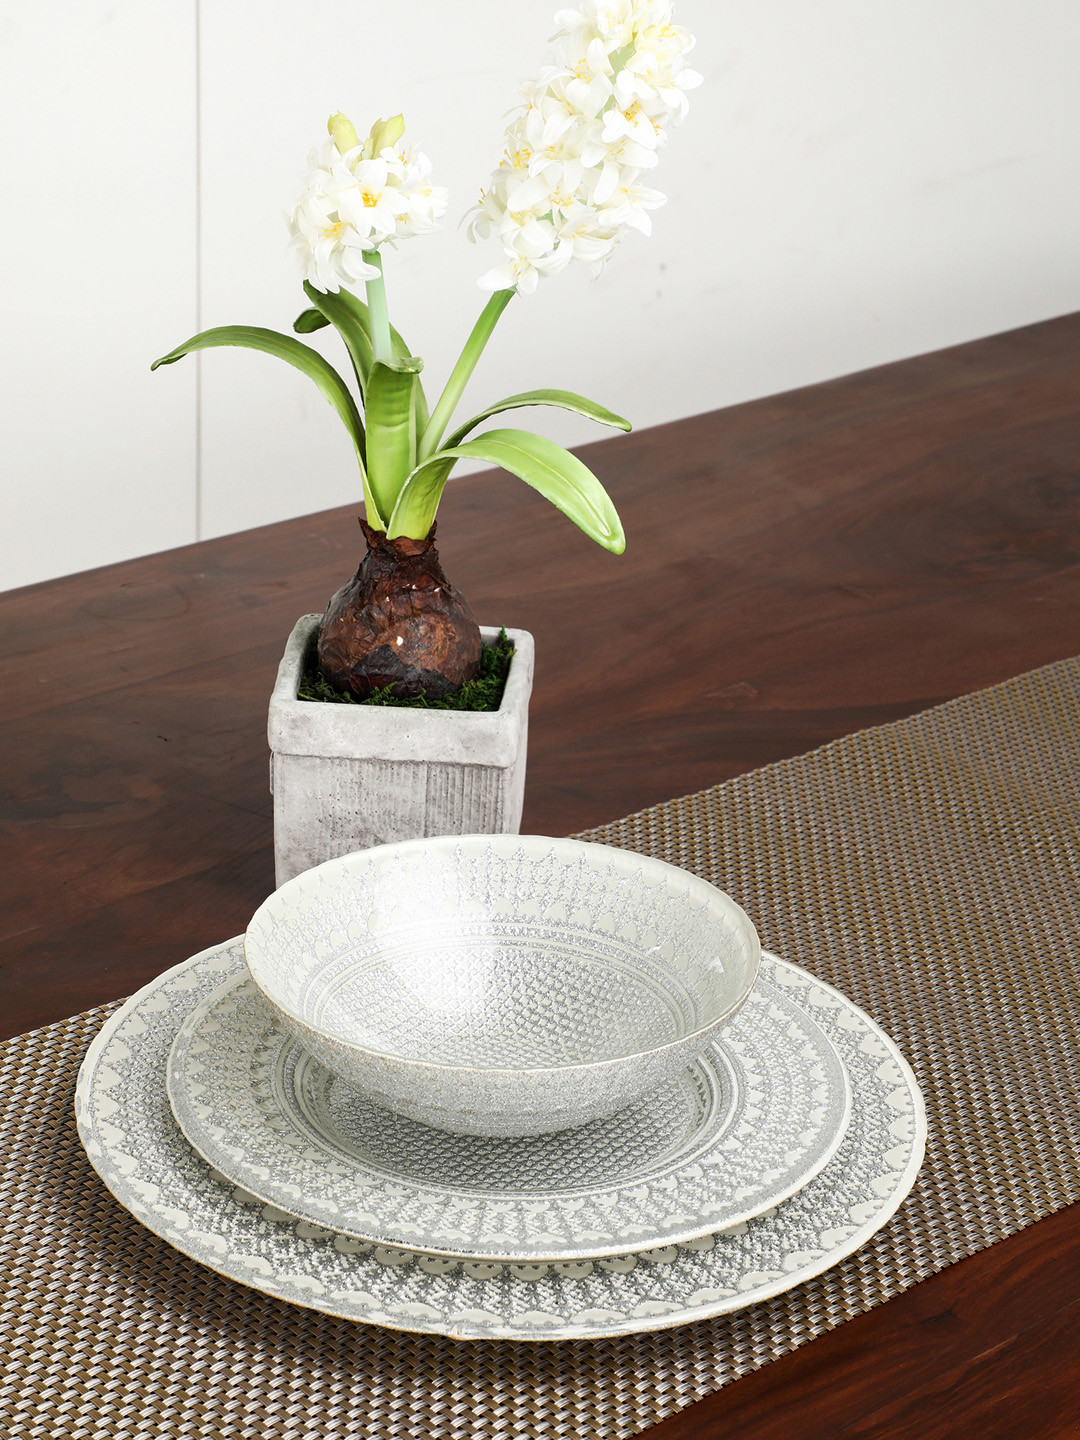 Flower Vase Online India Of Artificial Artificial Flowers and Plants Shirts Buy Artificial Inside Artificial Hyacinth with Pot